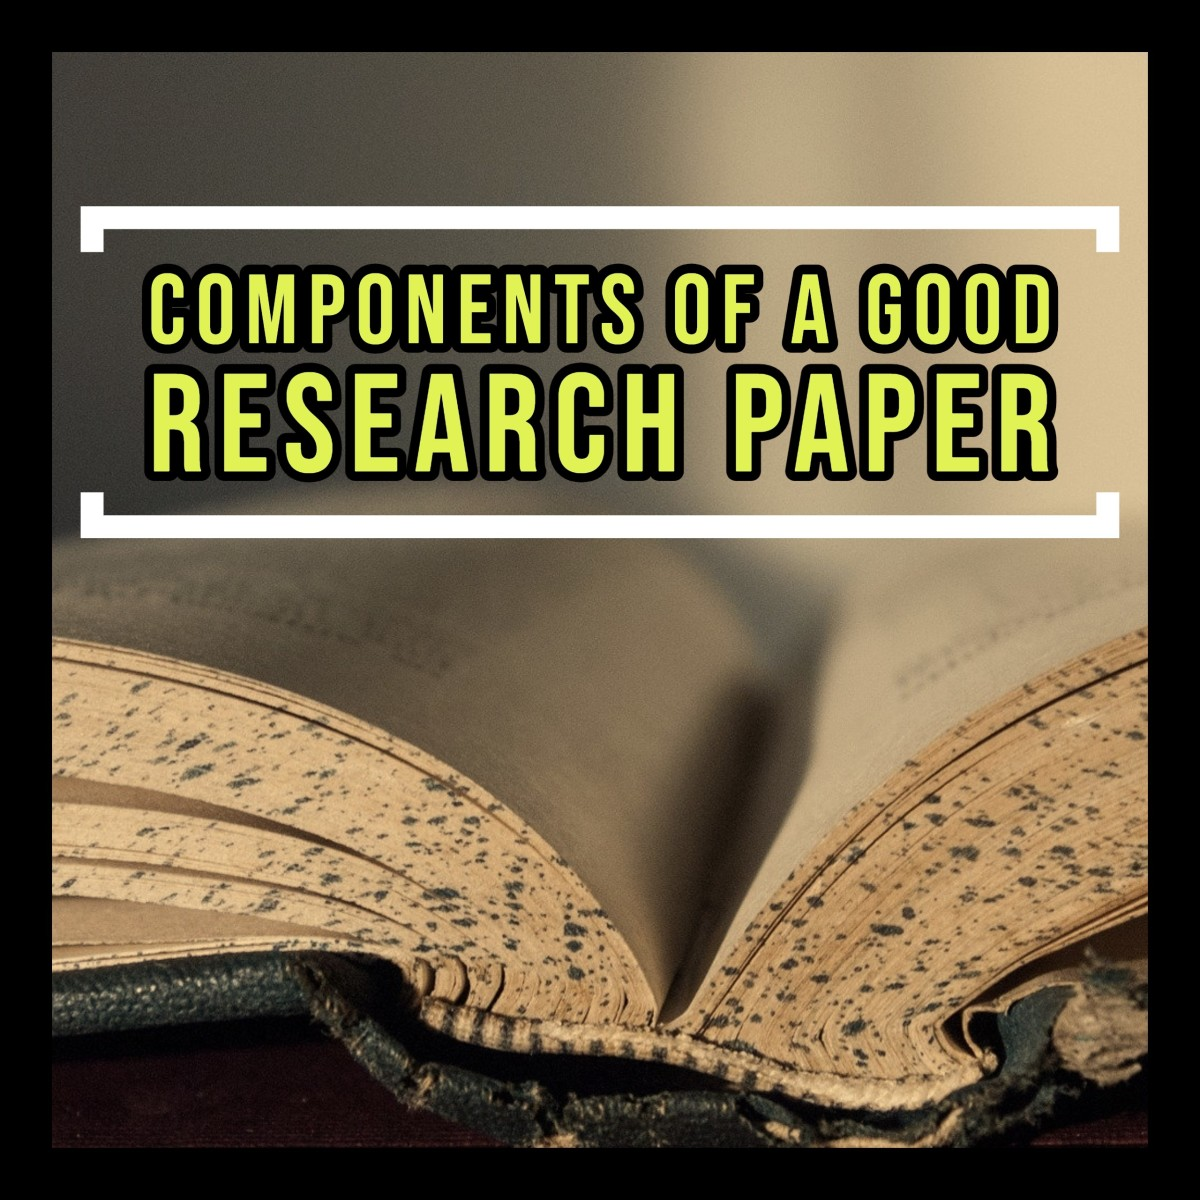 What makes for a good research paper?